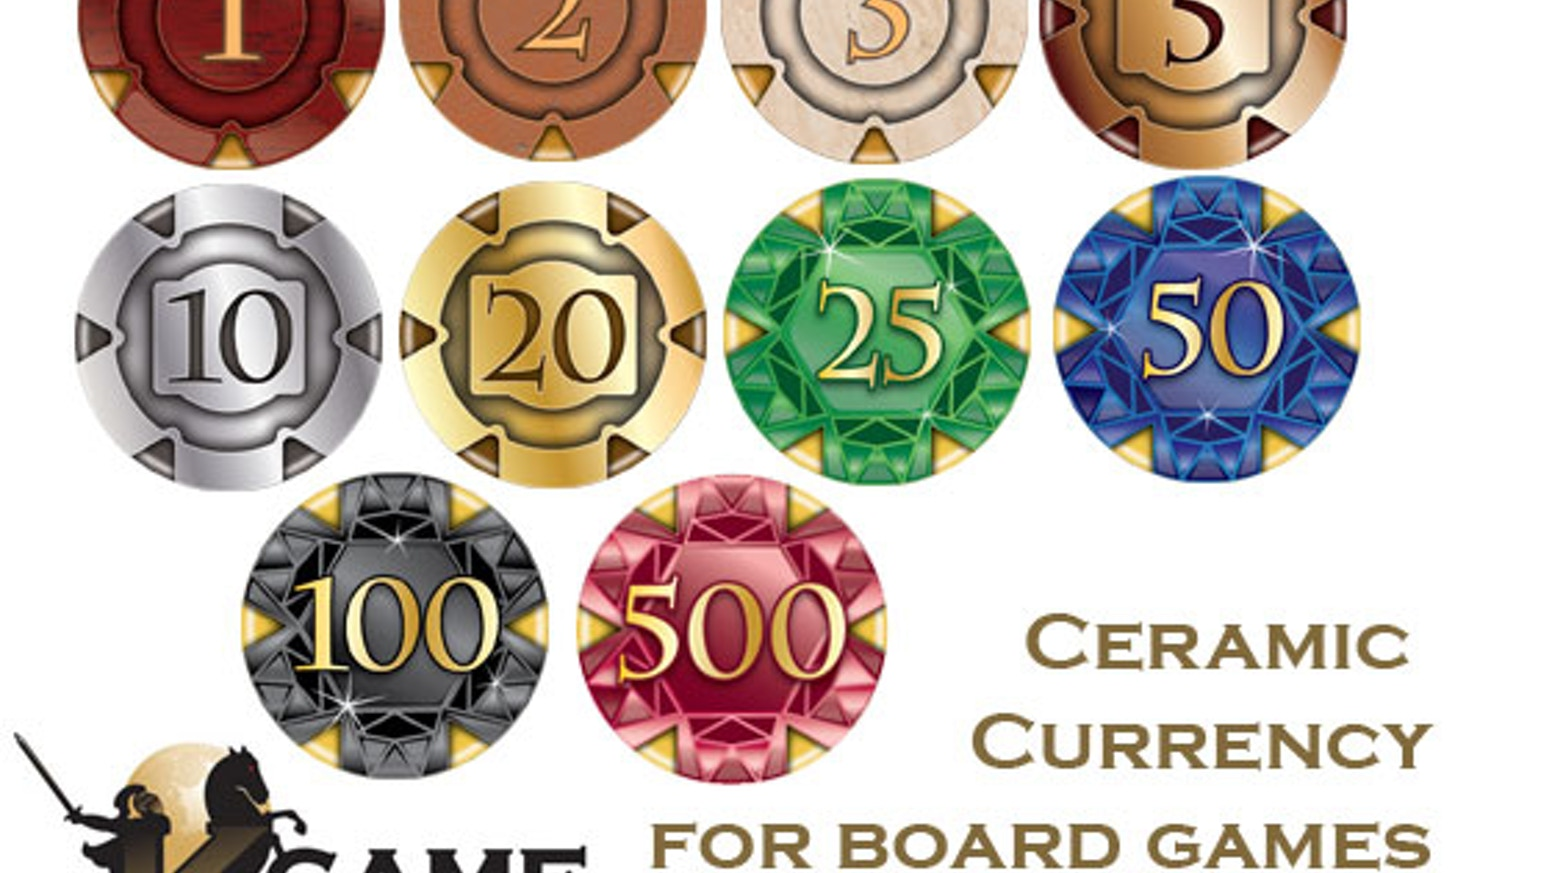 GameChips: Custom ceramic poker chips designed specifically for board gamers to replace the poor quality currency often found in games.